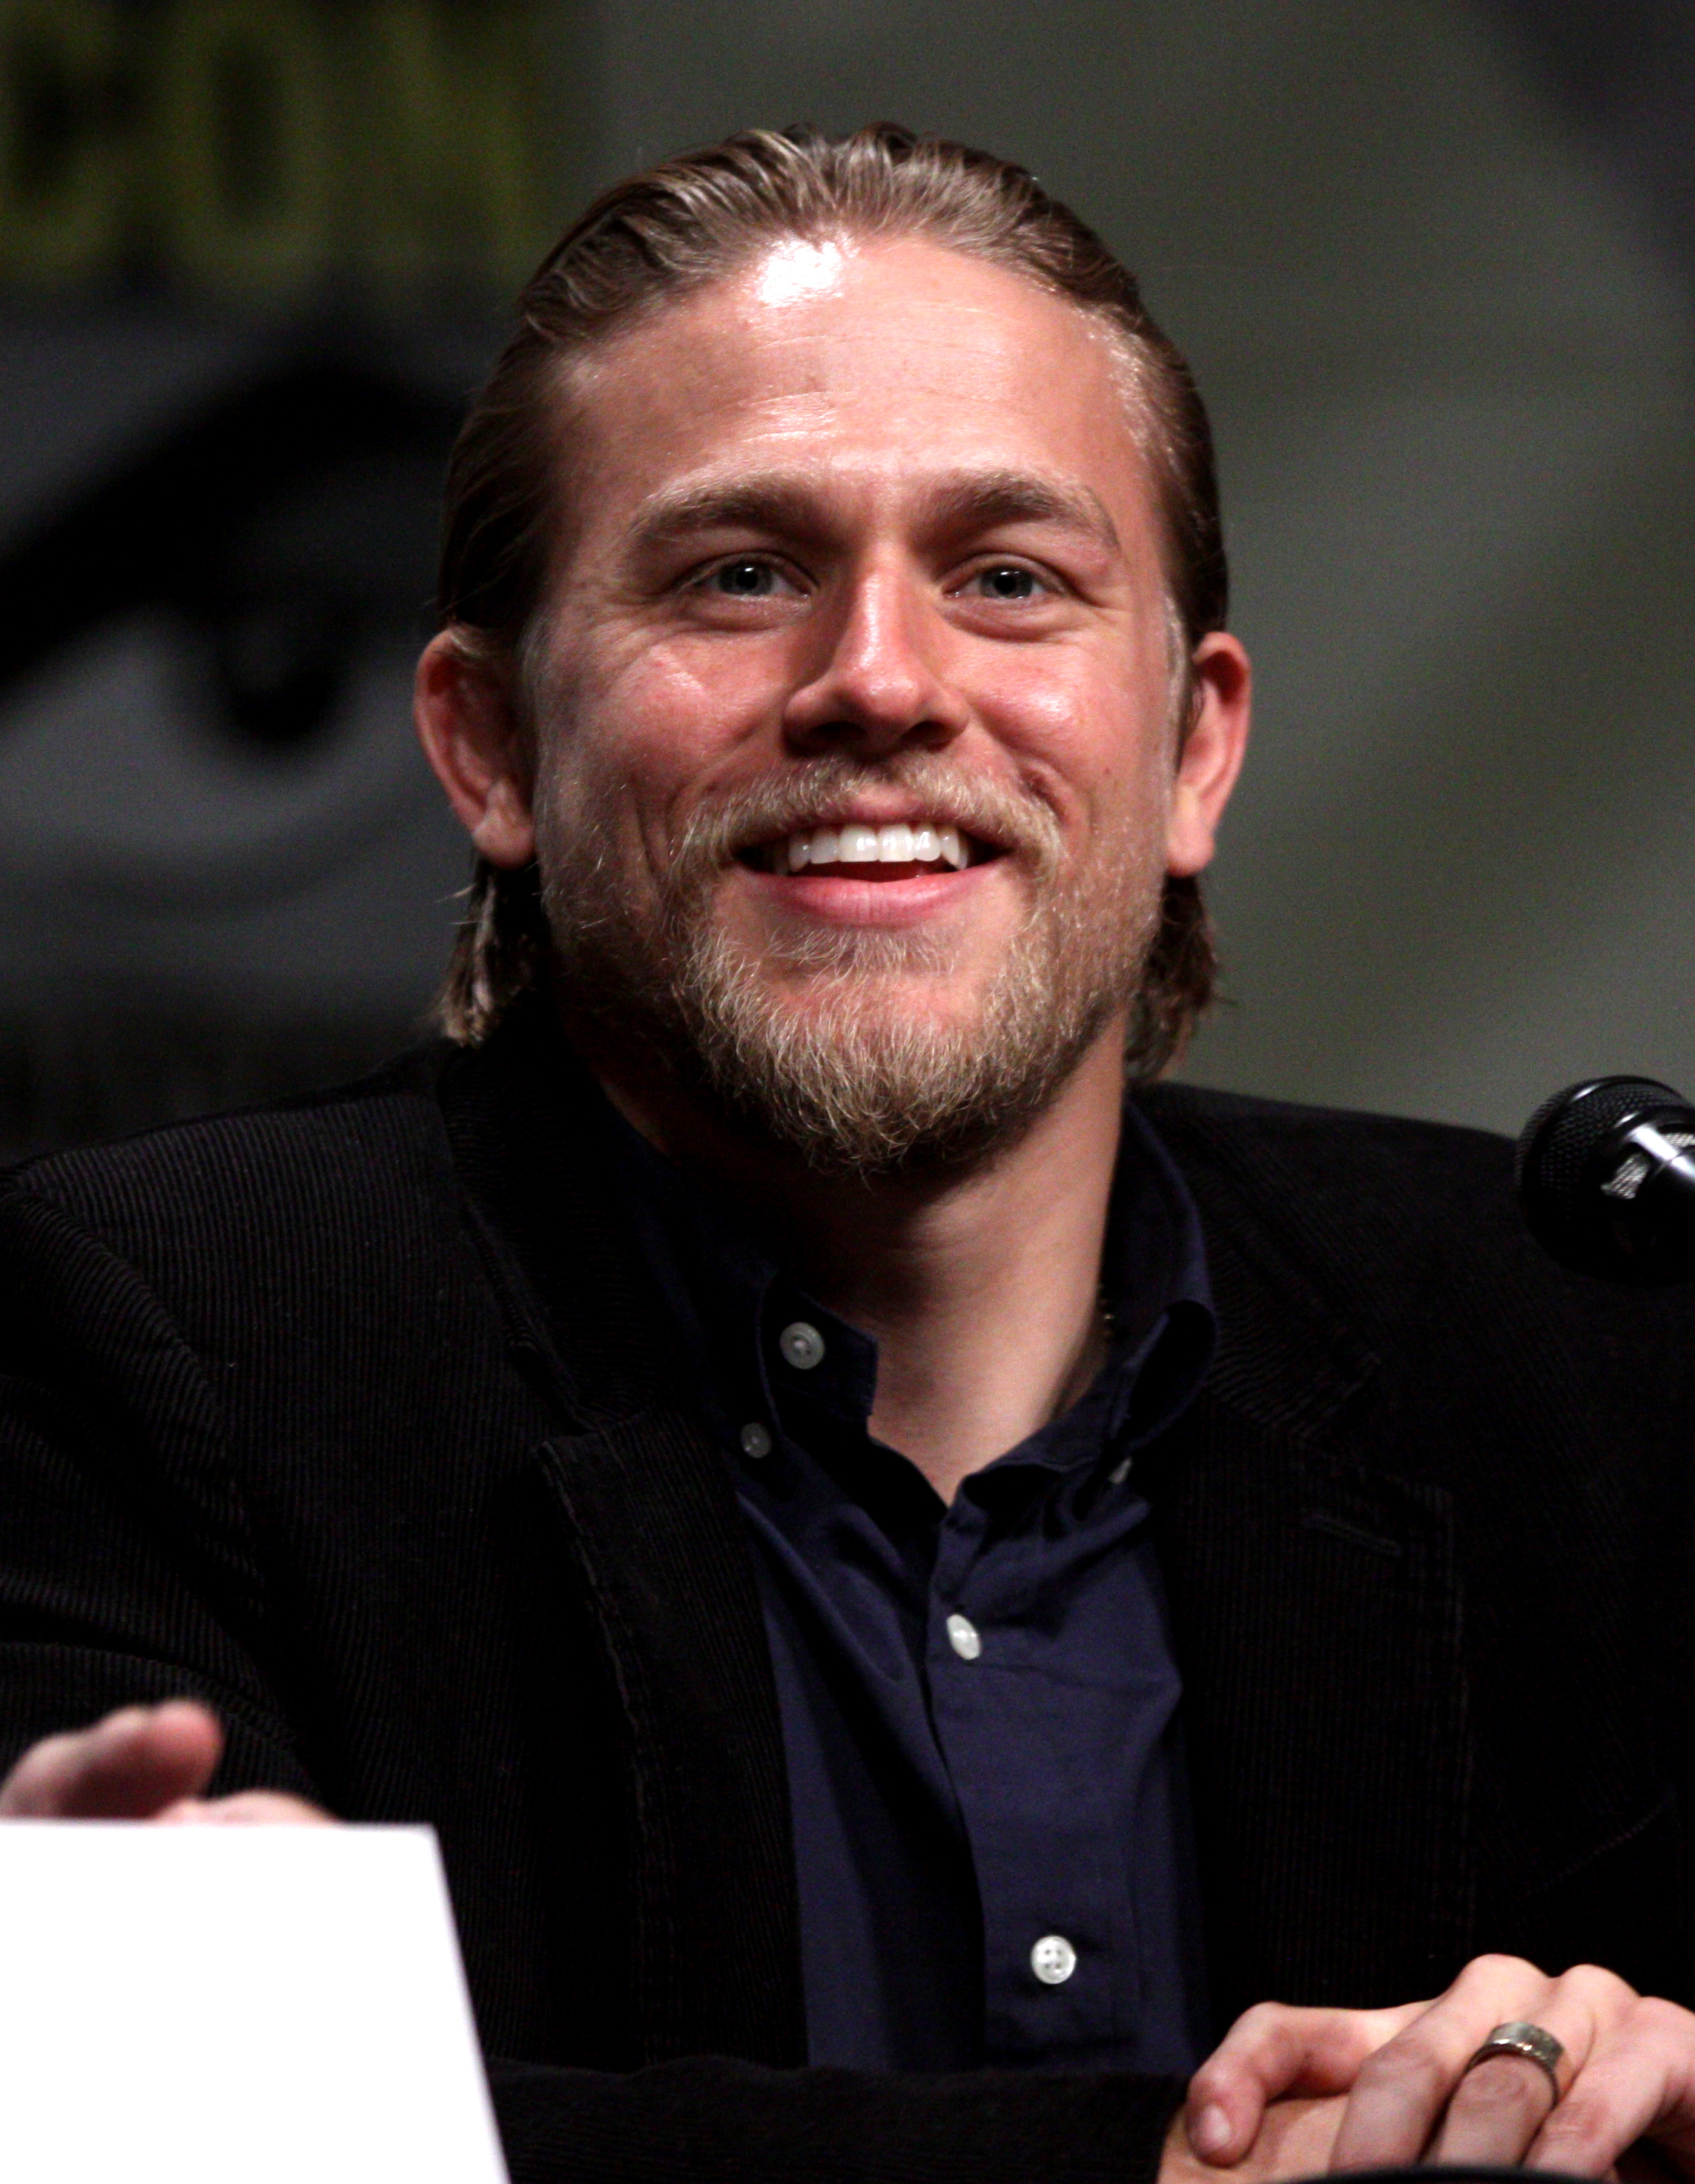 File:Charlie Hunnam by Gage Skidmore 3.jpg - Wikimedia Commons